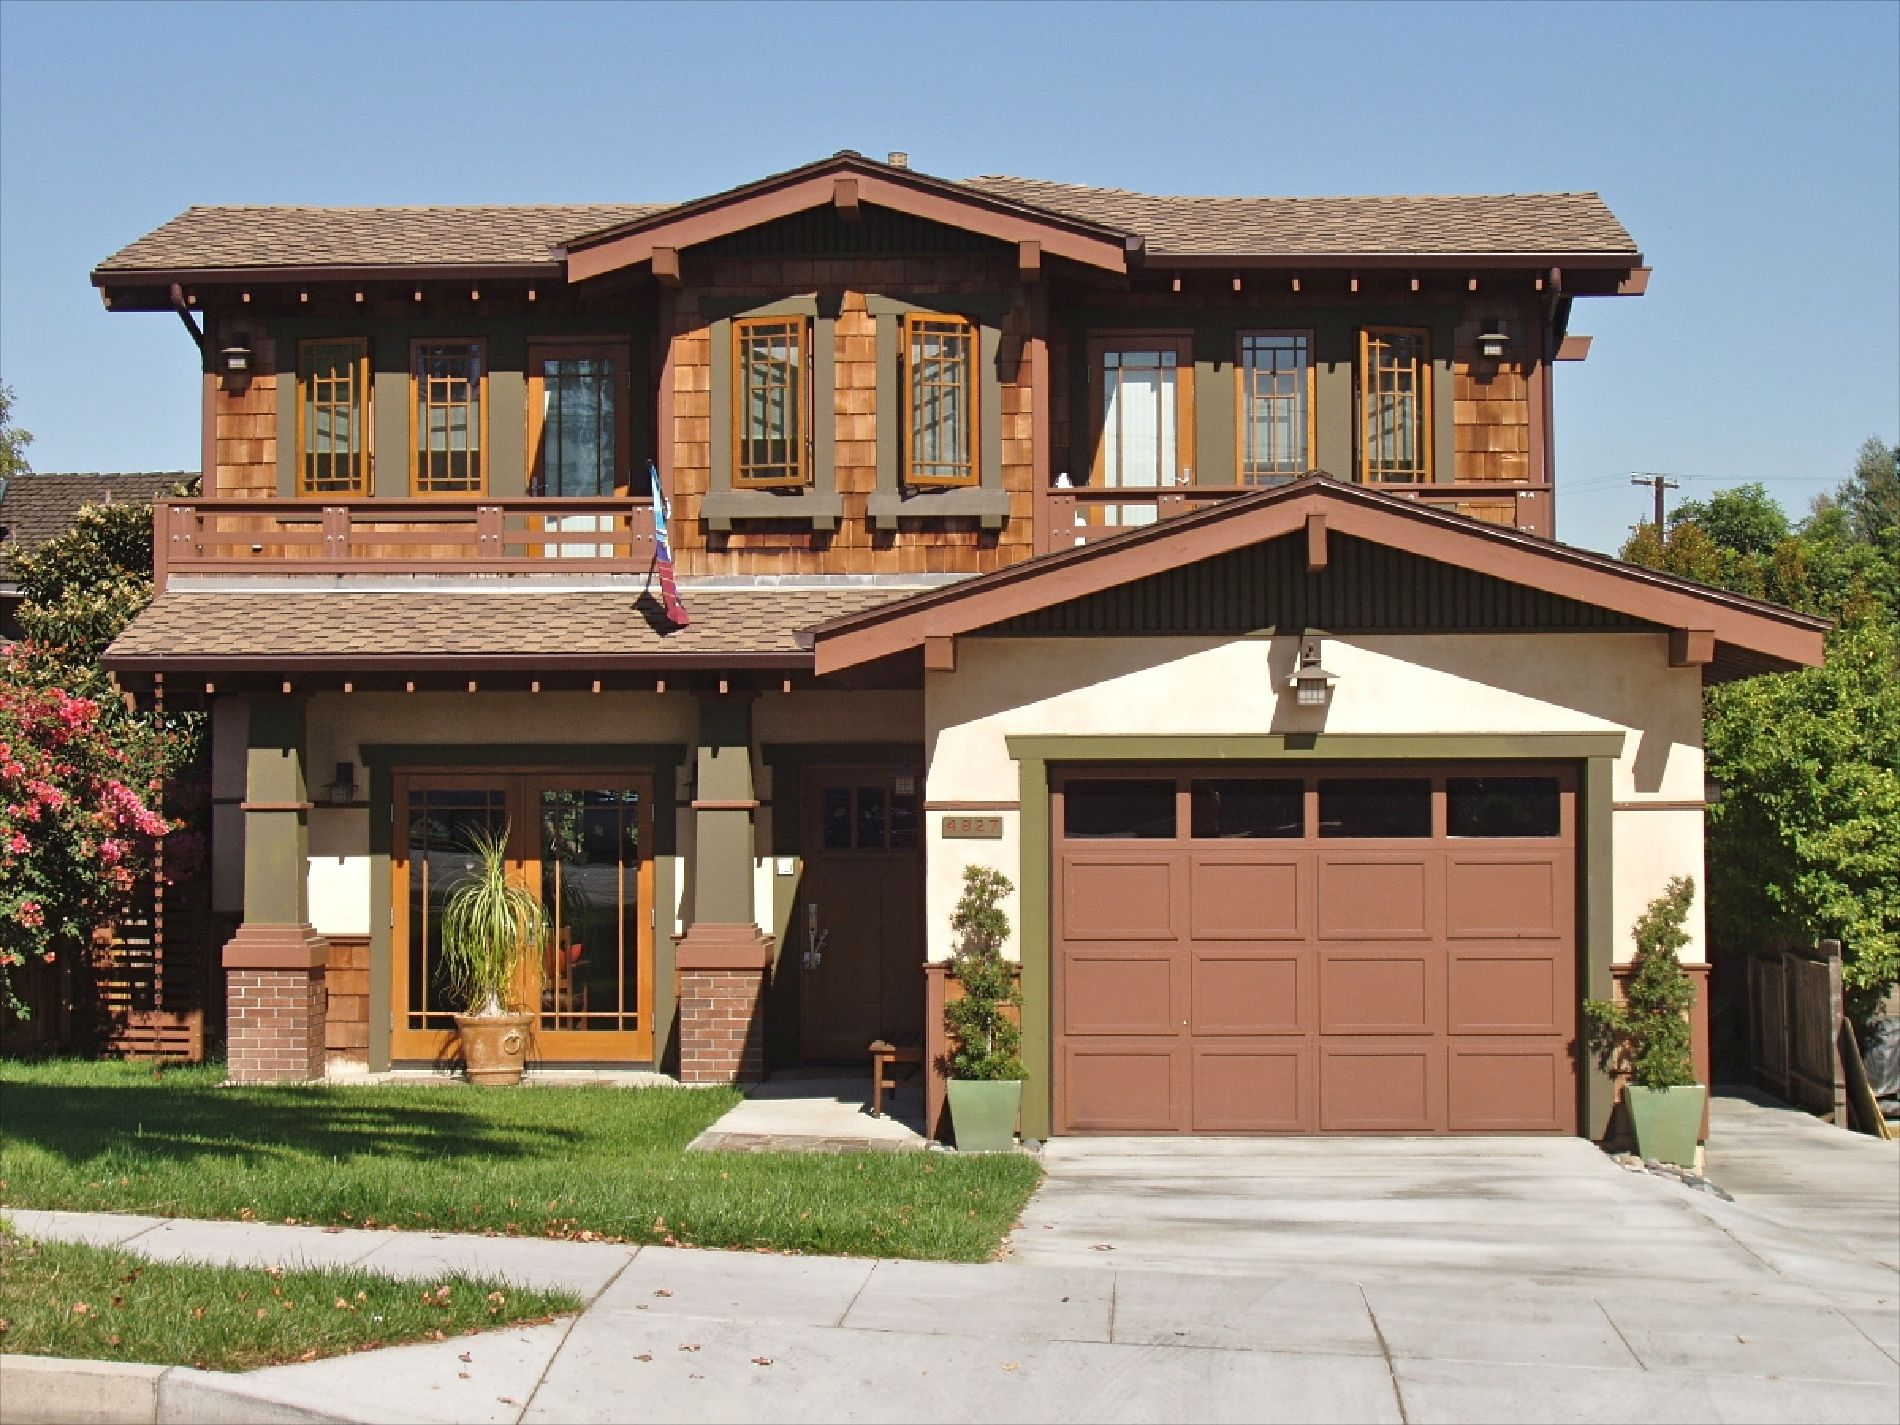 California bungalow california bungalow and craftsman for Cost to build craftsman home